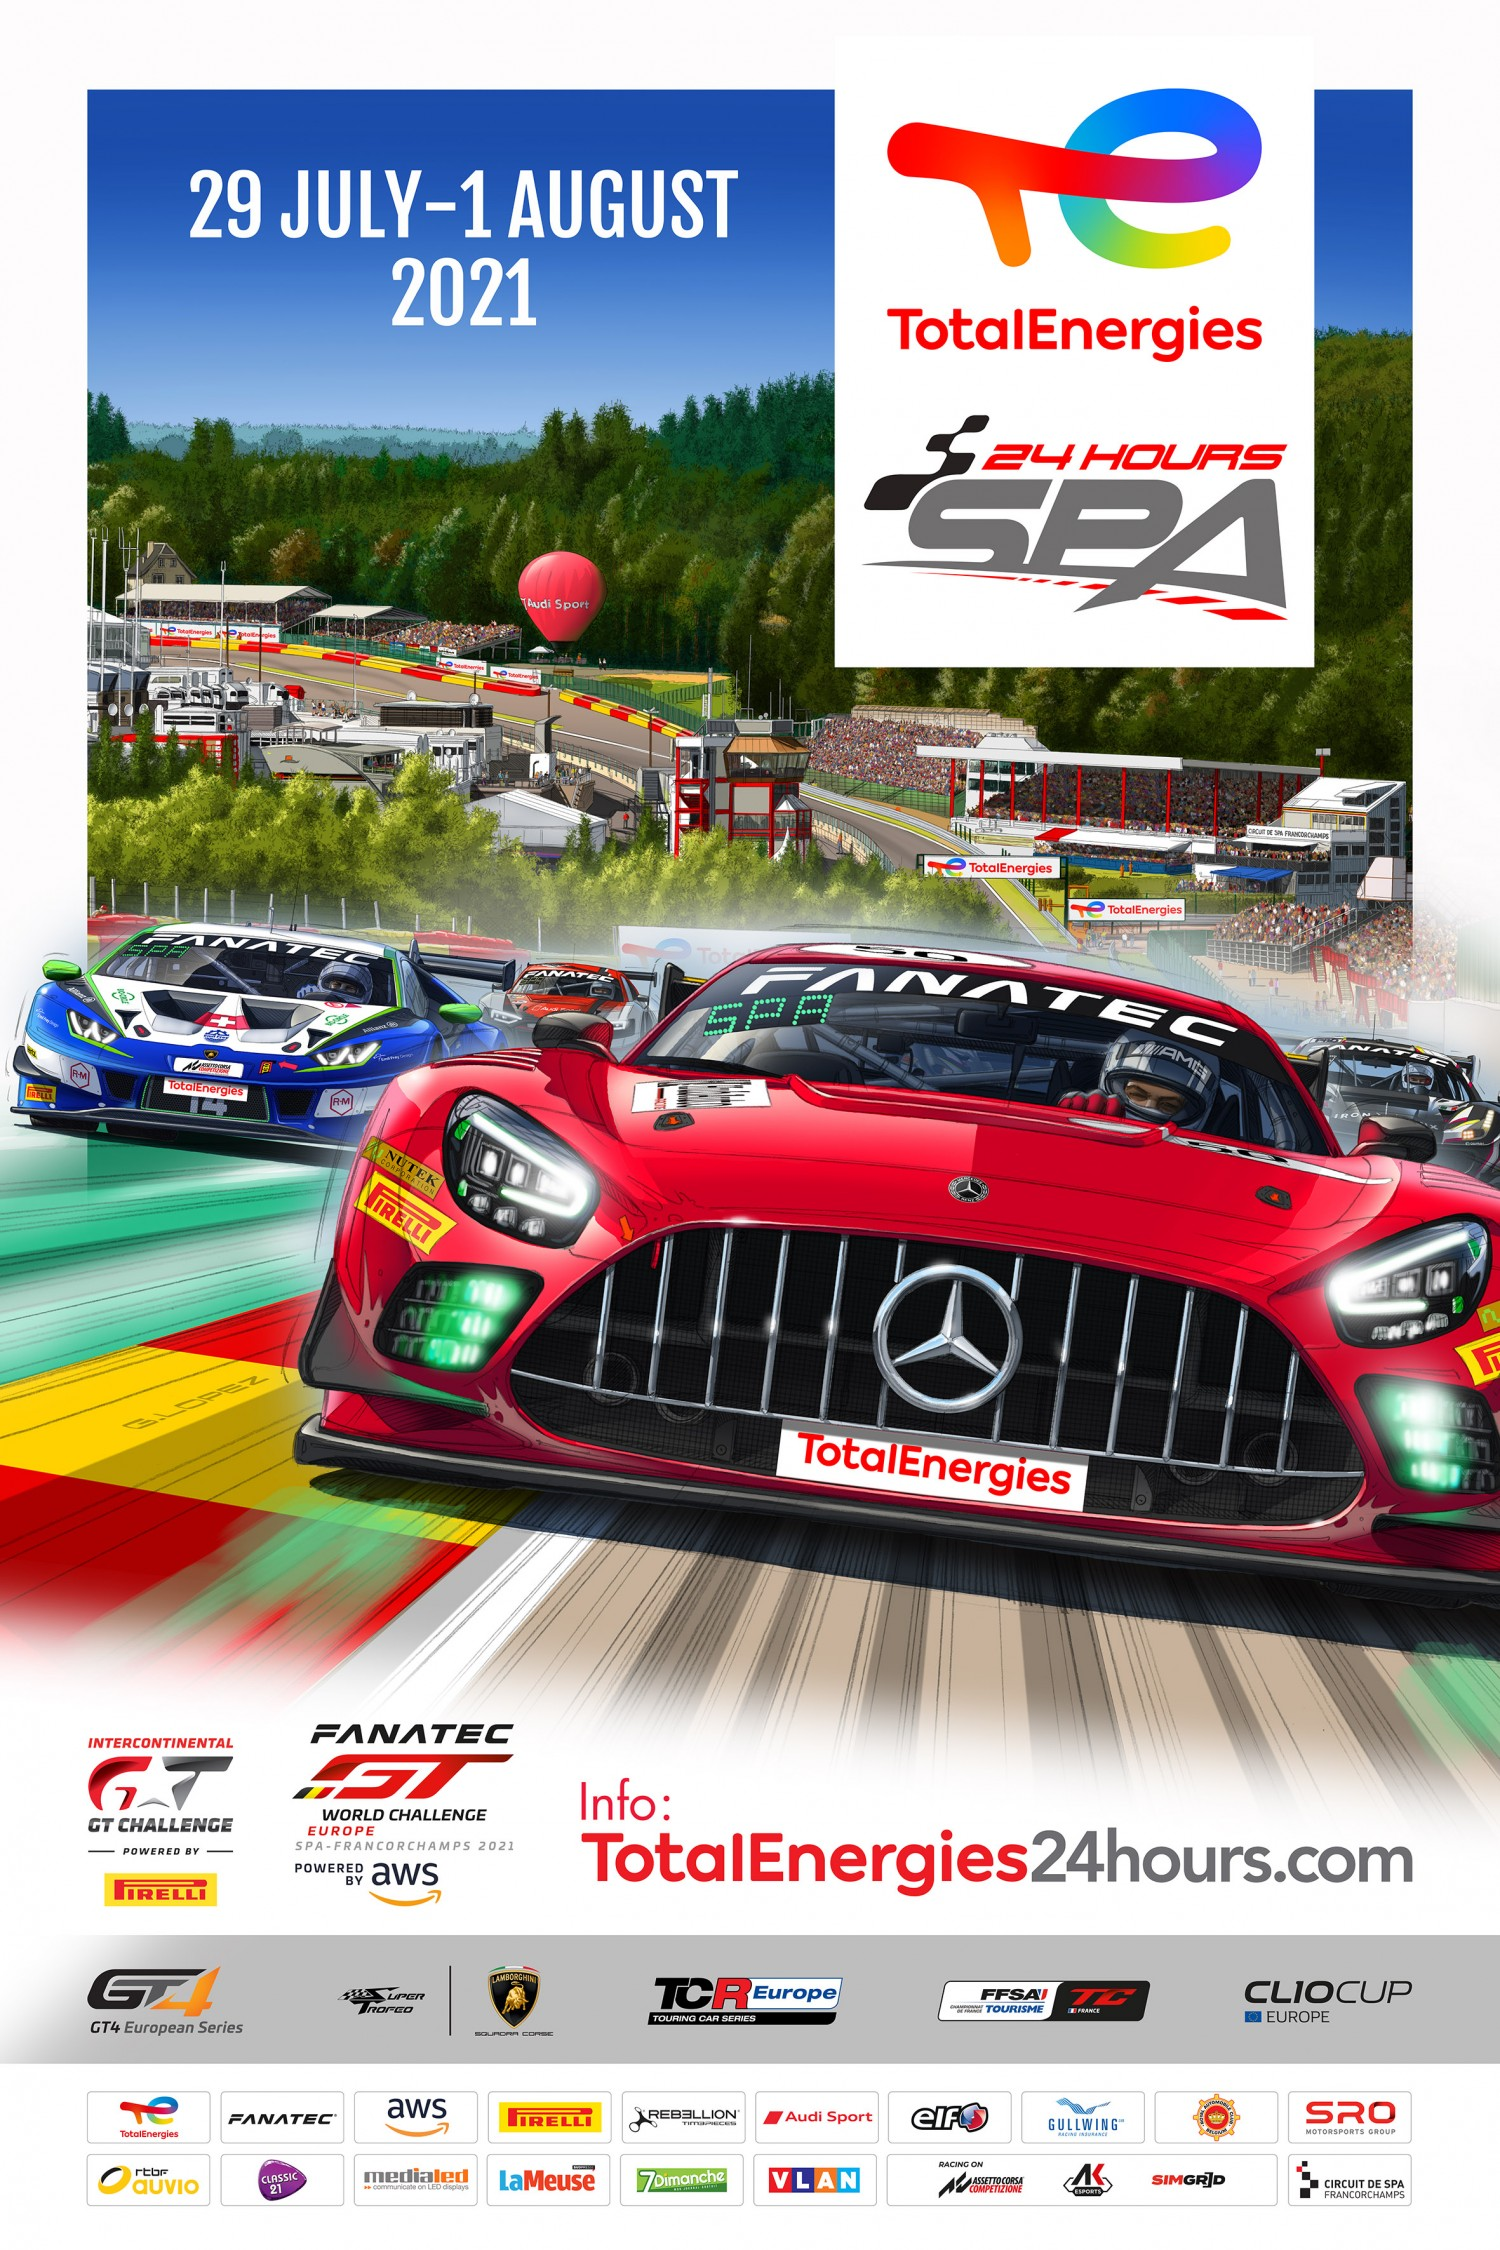 https://www.gt-world-challenge-europe.com/timthumb.php?w=1600&src=%2Fimages%2FNews+2021%2Ffinal-SPA-2021-TOTALENERGIES-Blanc.jpg